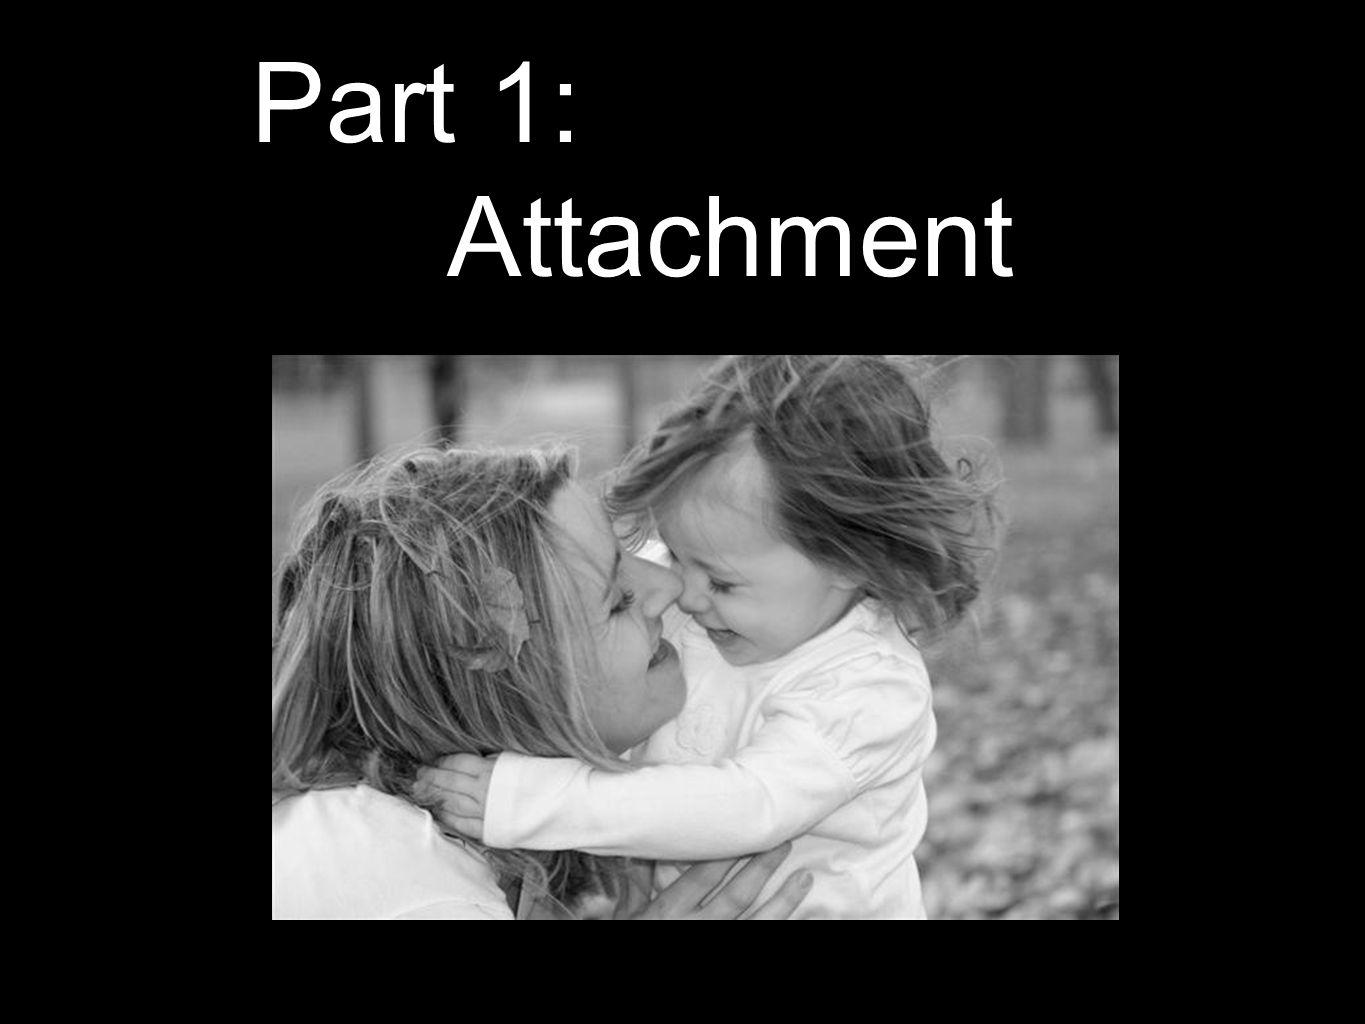 Part 1: Attachment